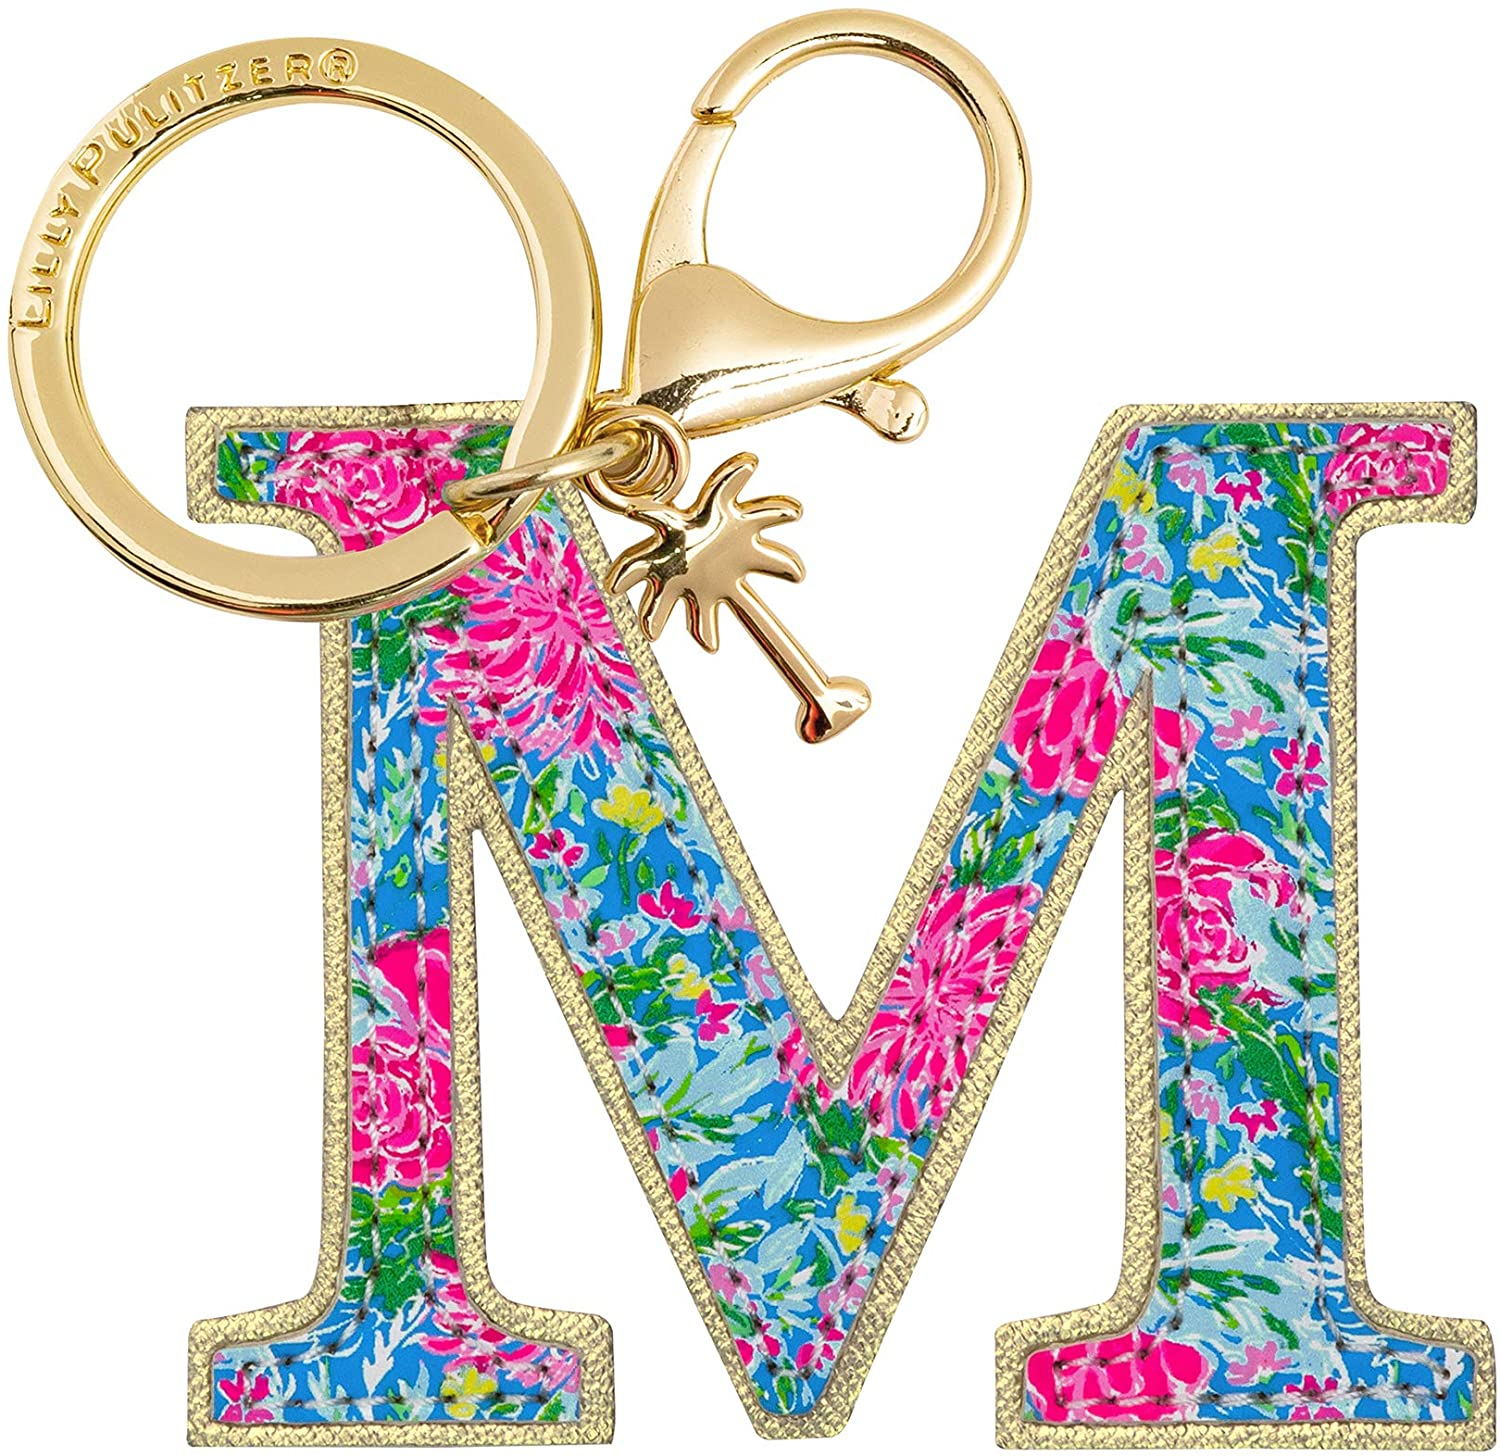 Lilly Pulitzer Leatherette Initial Keychain, Letter Bag Charm for Women